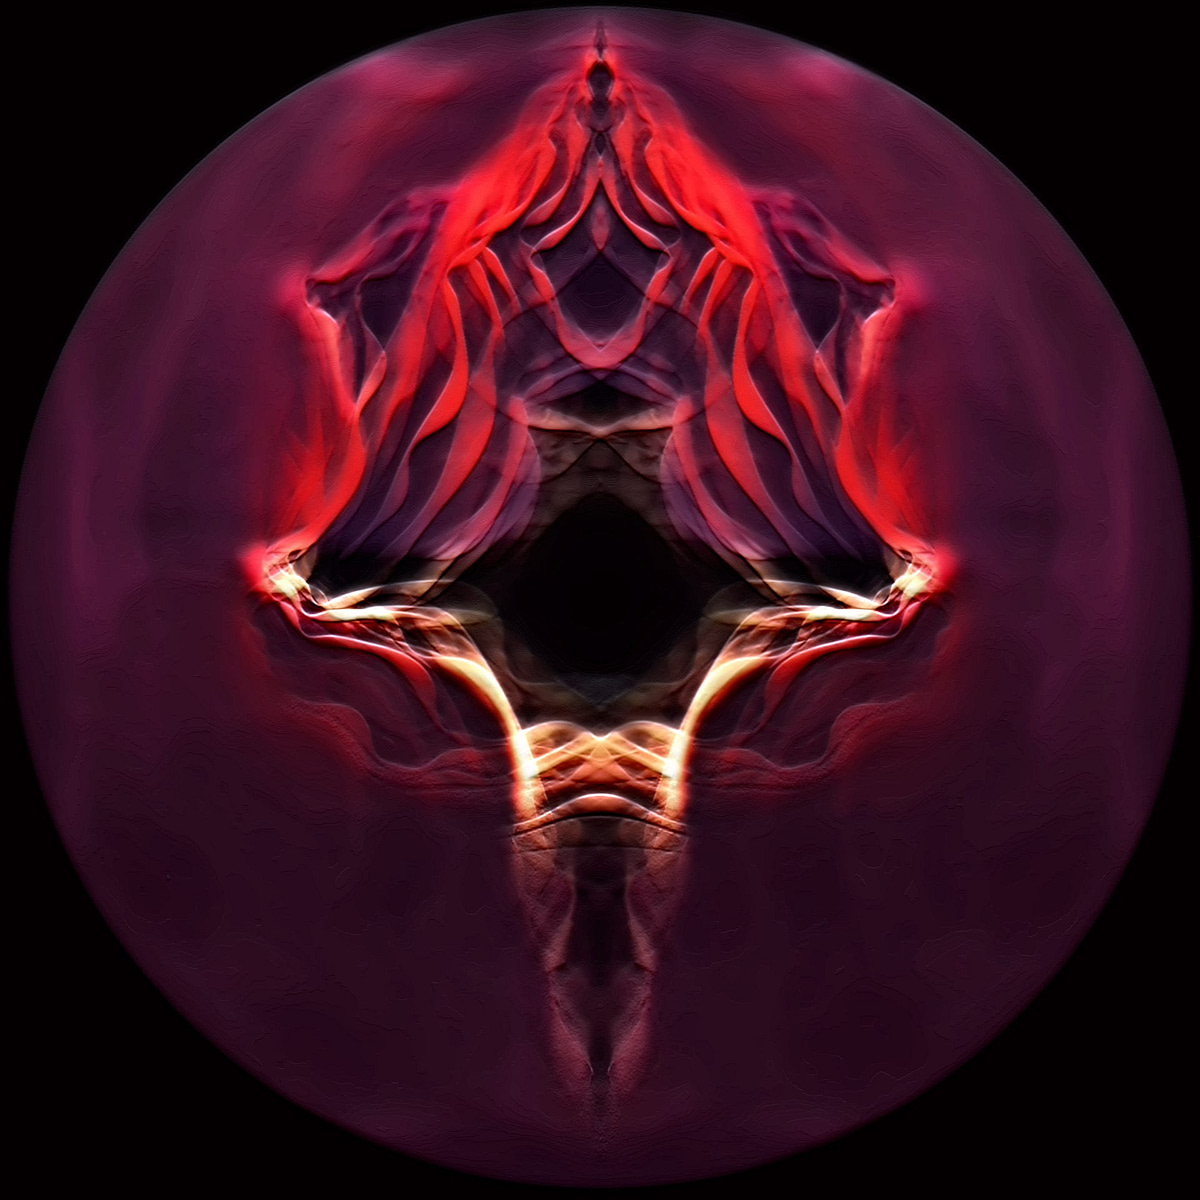 Fractal of the burnt offering of Christ on the cross as a sacrificed bull going up in flames and more